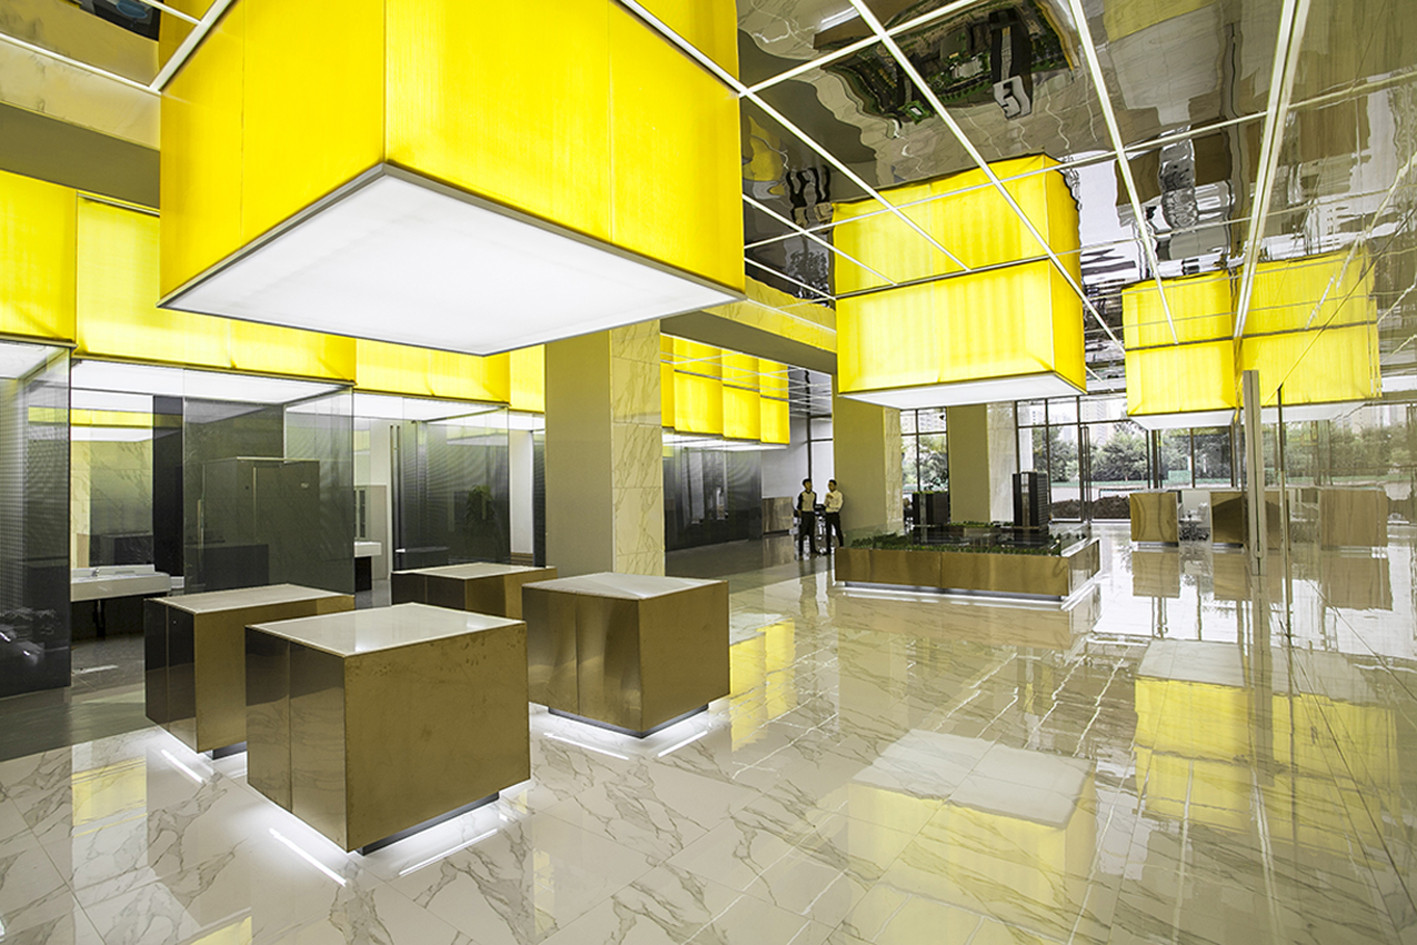 Architecture Office gallery of juxing tower showroom / people's architecture office - 2